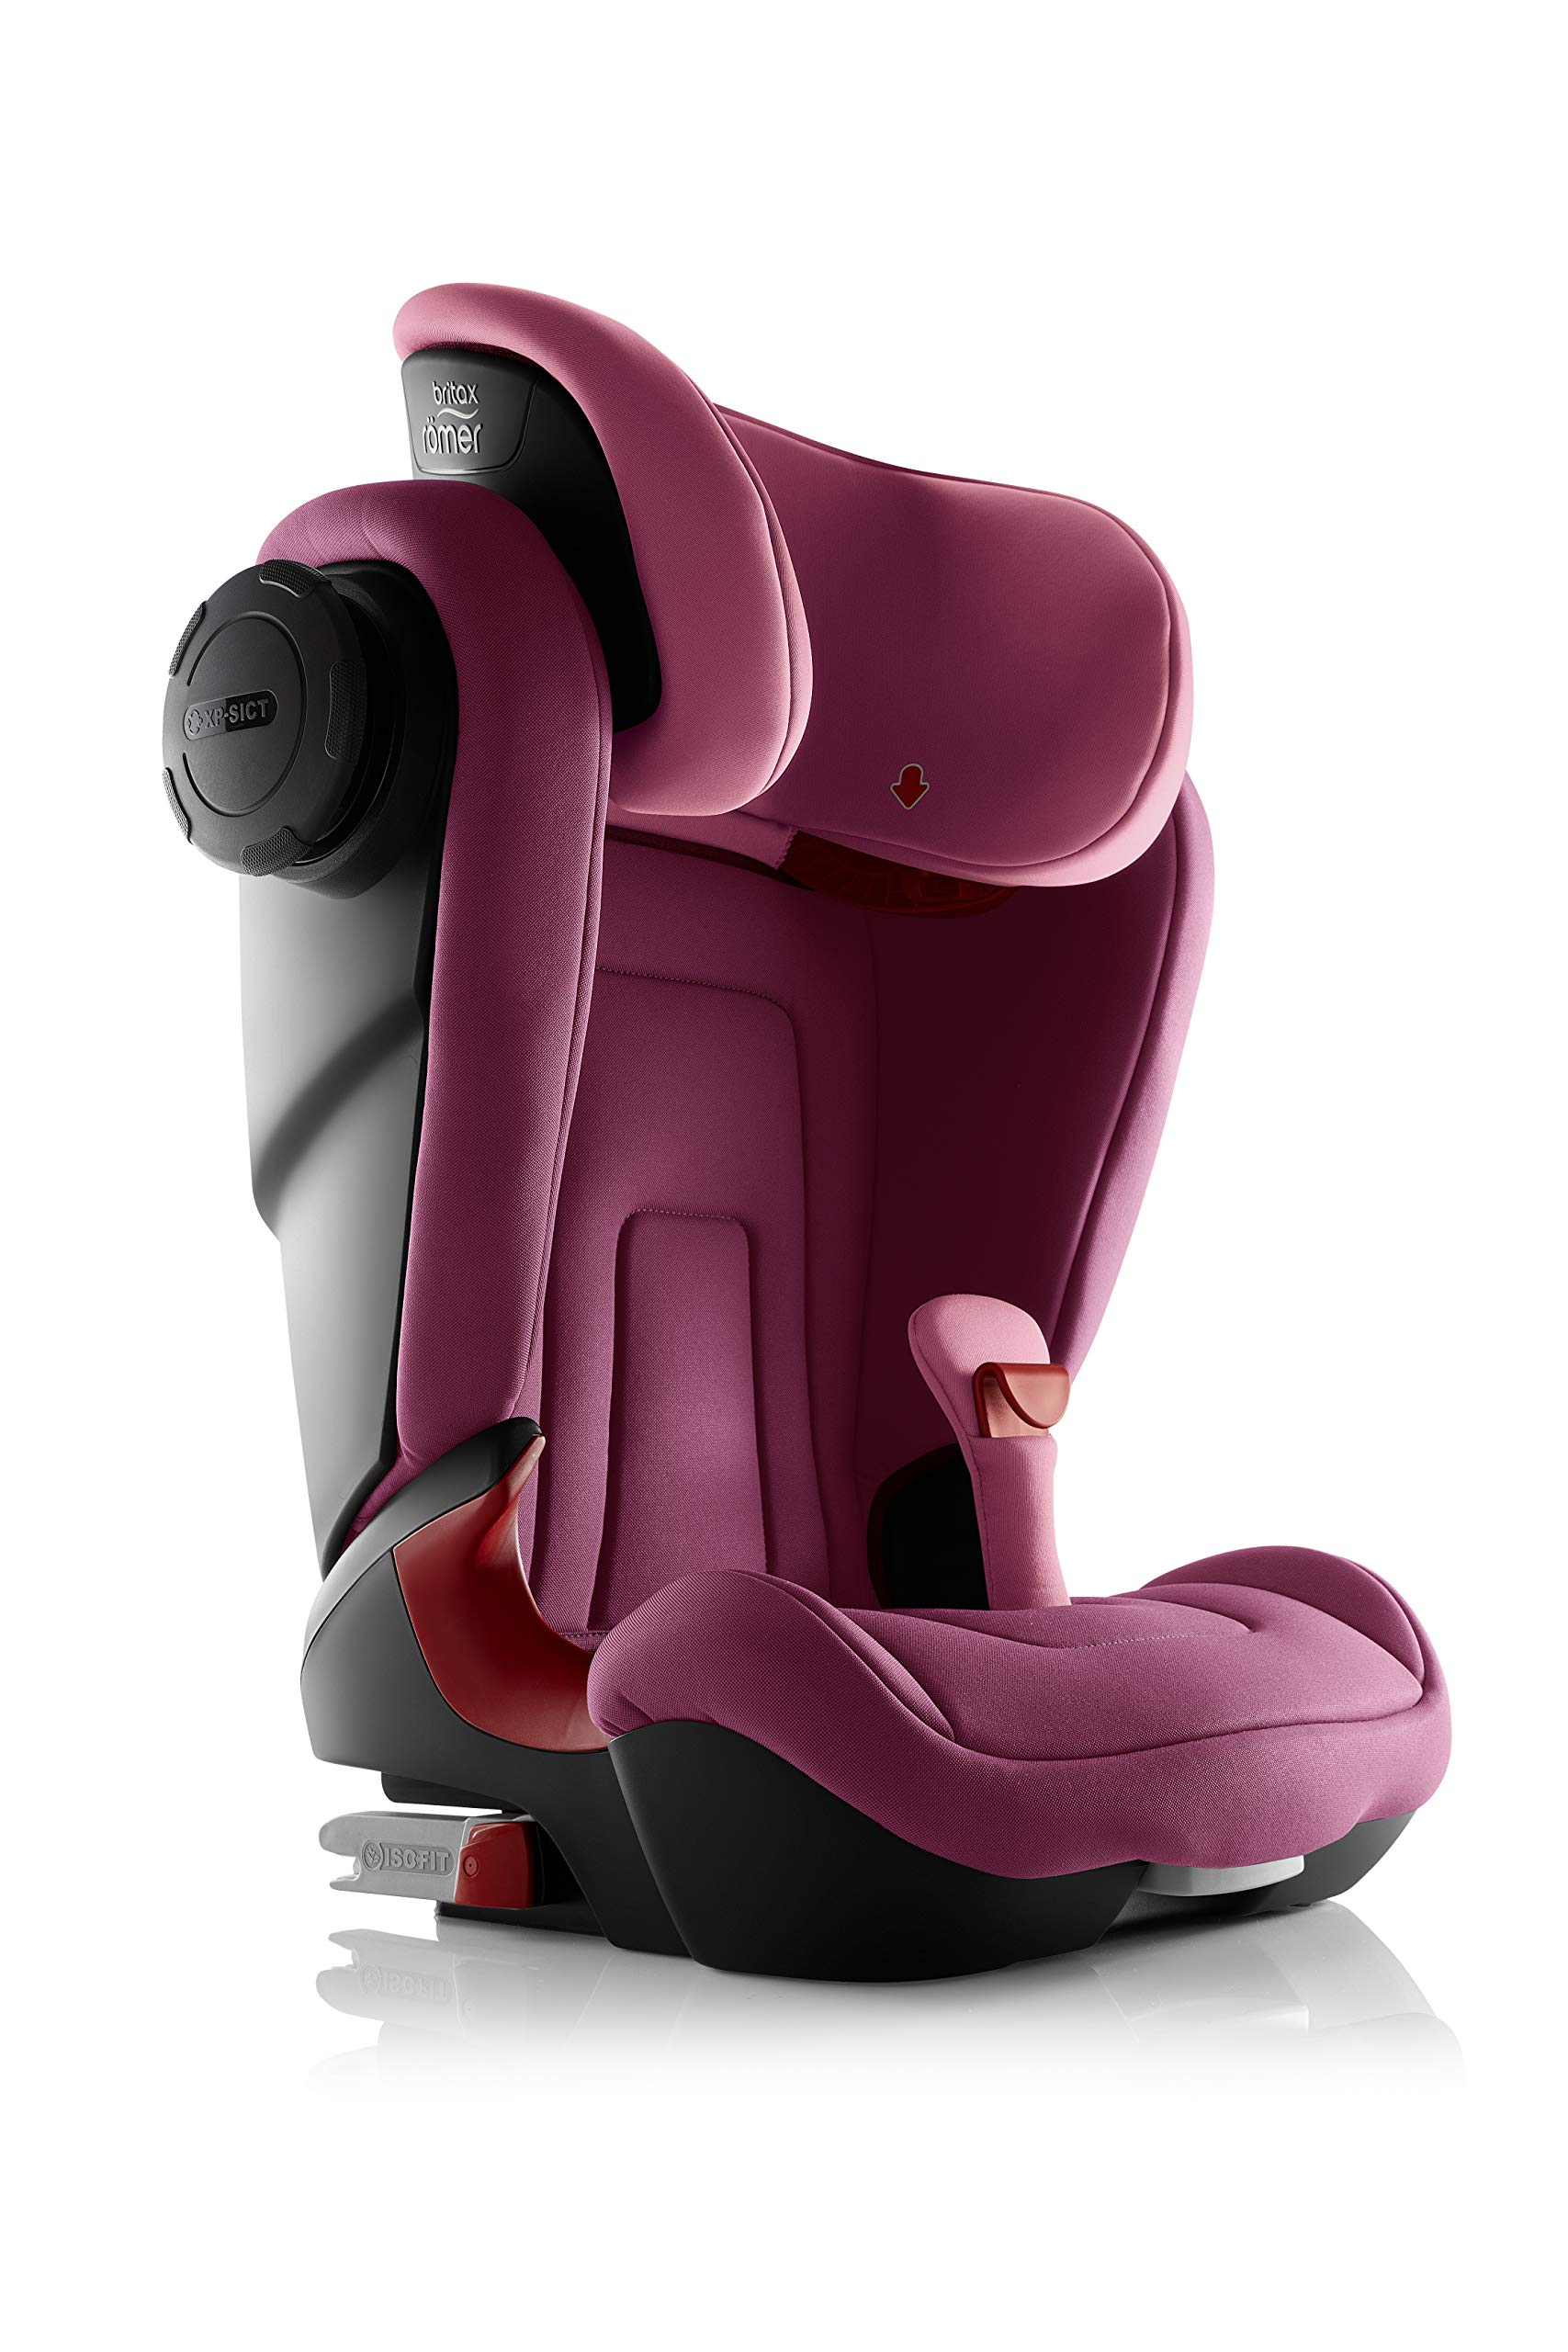 Britax Römer KIDFIX² S Group 2-3 (15-36kg) Car Seat - Wine Rose  Advanced side impact protection - sict offers superior protection to your child in the event of a side collision. reducing impact forces by minimising the distance between the car and the car seat. Secure guard - helps to protect your child's delicate abdominal area by adding an extra - a 4th - contact point to the 3-point seat belt. High back booster - protects your child in 3 ways: provides head to hip protection; belt guides provide correct positioning of the seat belt and the padded headrest provides safety and comfort. 4